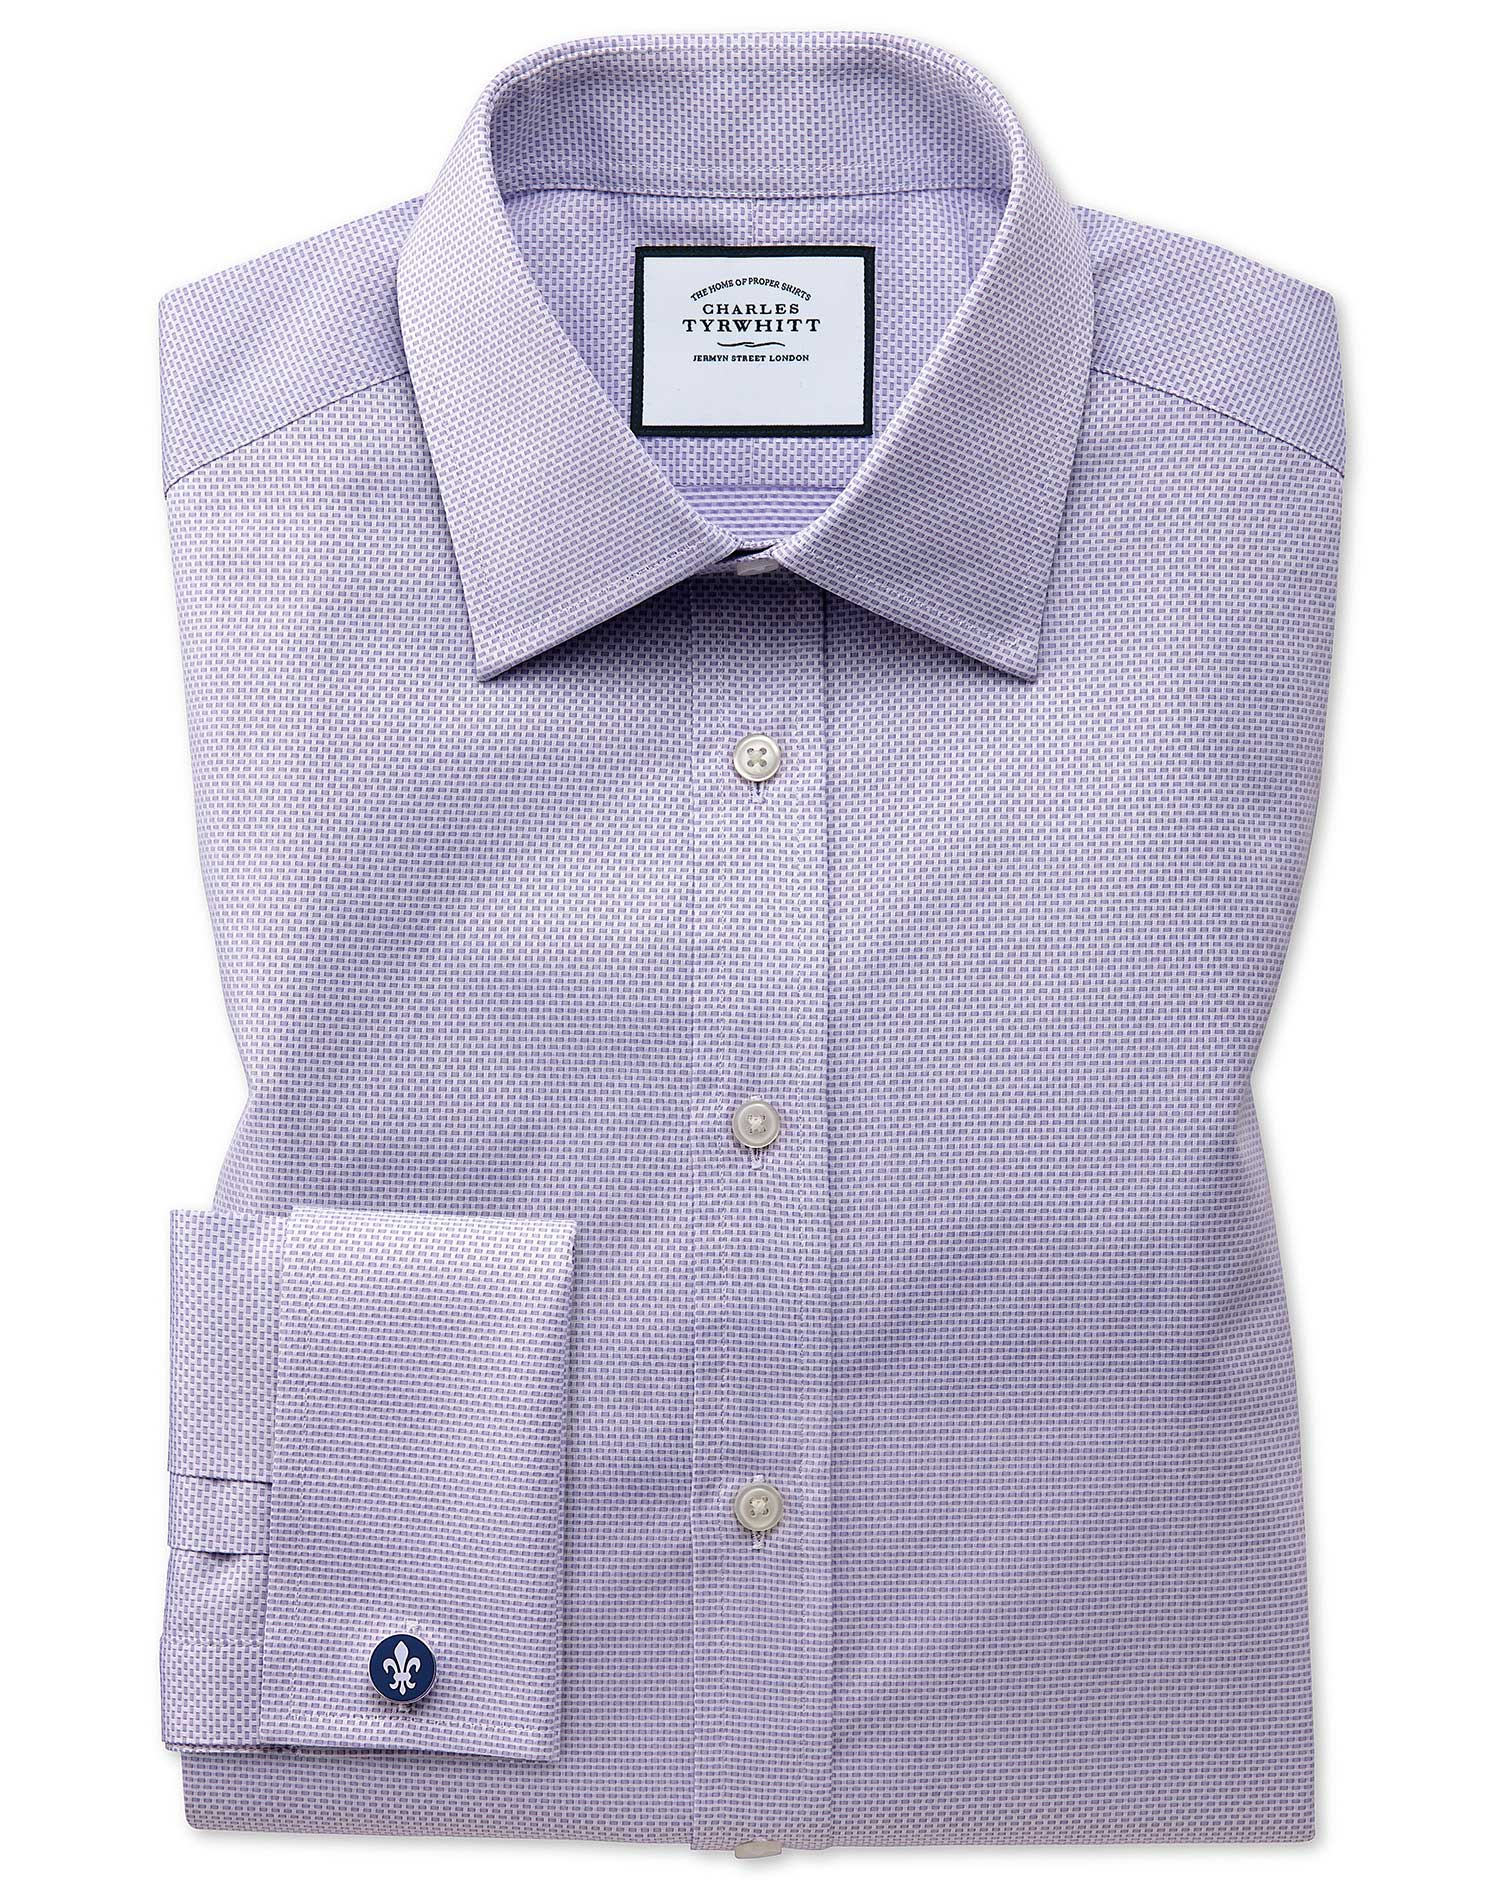 Slim Fit Lilac Cube Weave Egyptian Cotton Formal Shirt Single Cuff Size 17/36 by Charles Tyrwhitt